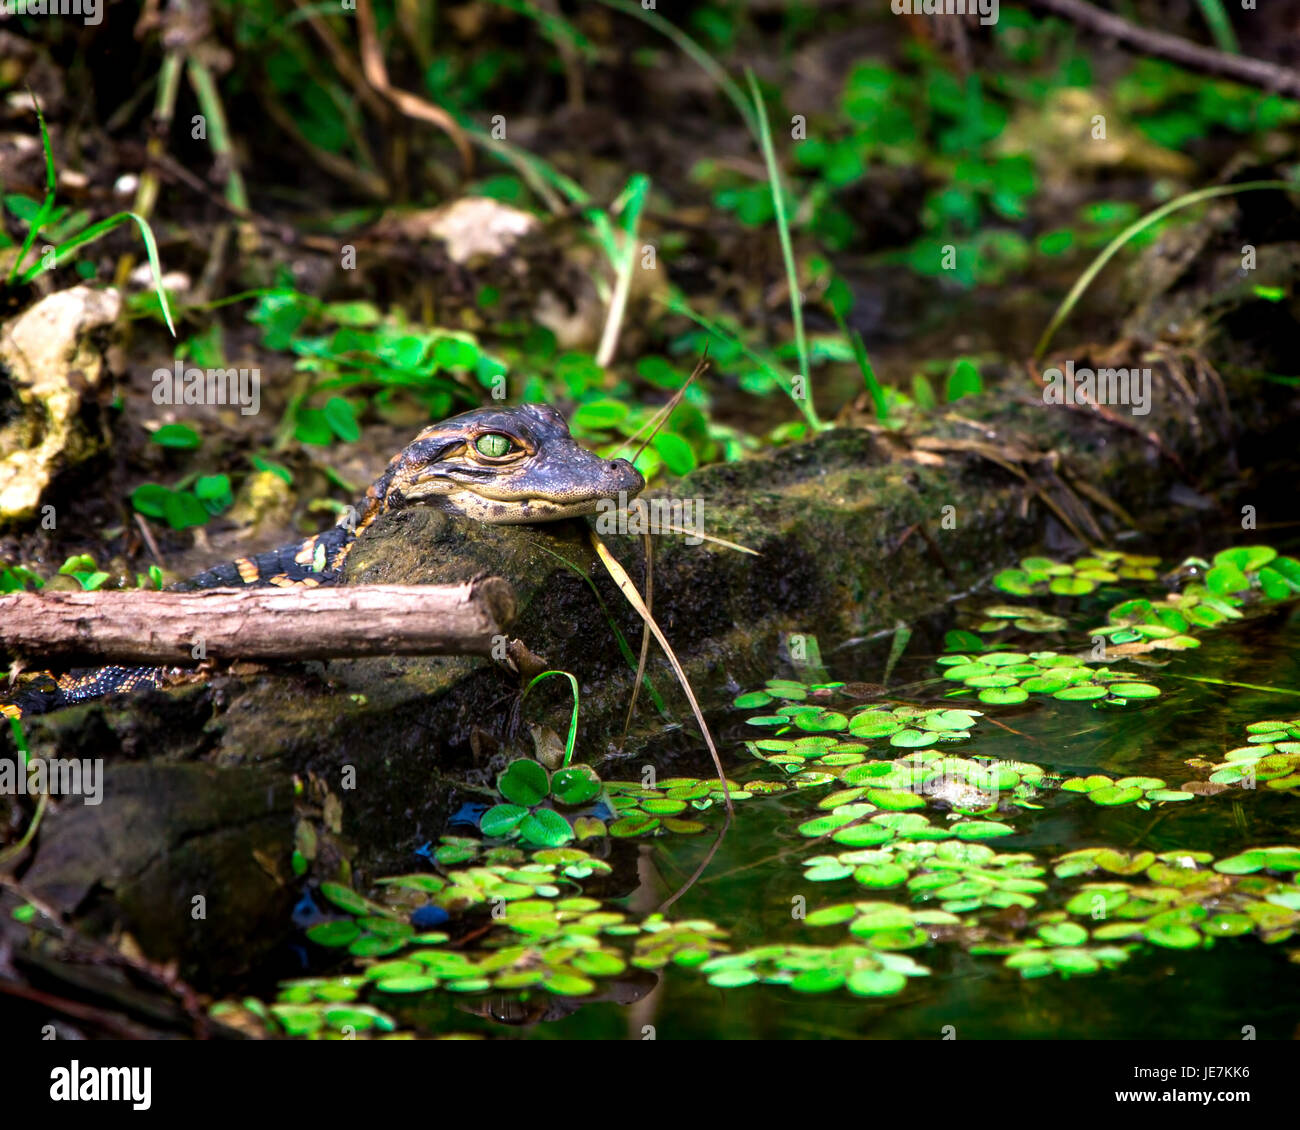 A baby alligator checks things out in the Florida Everglades. The mother alligator was keeping a close eye on thigs - Stock Image